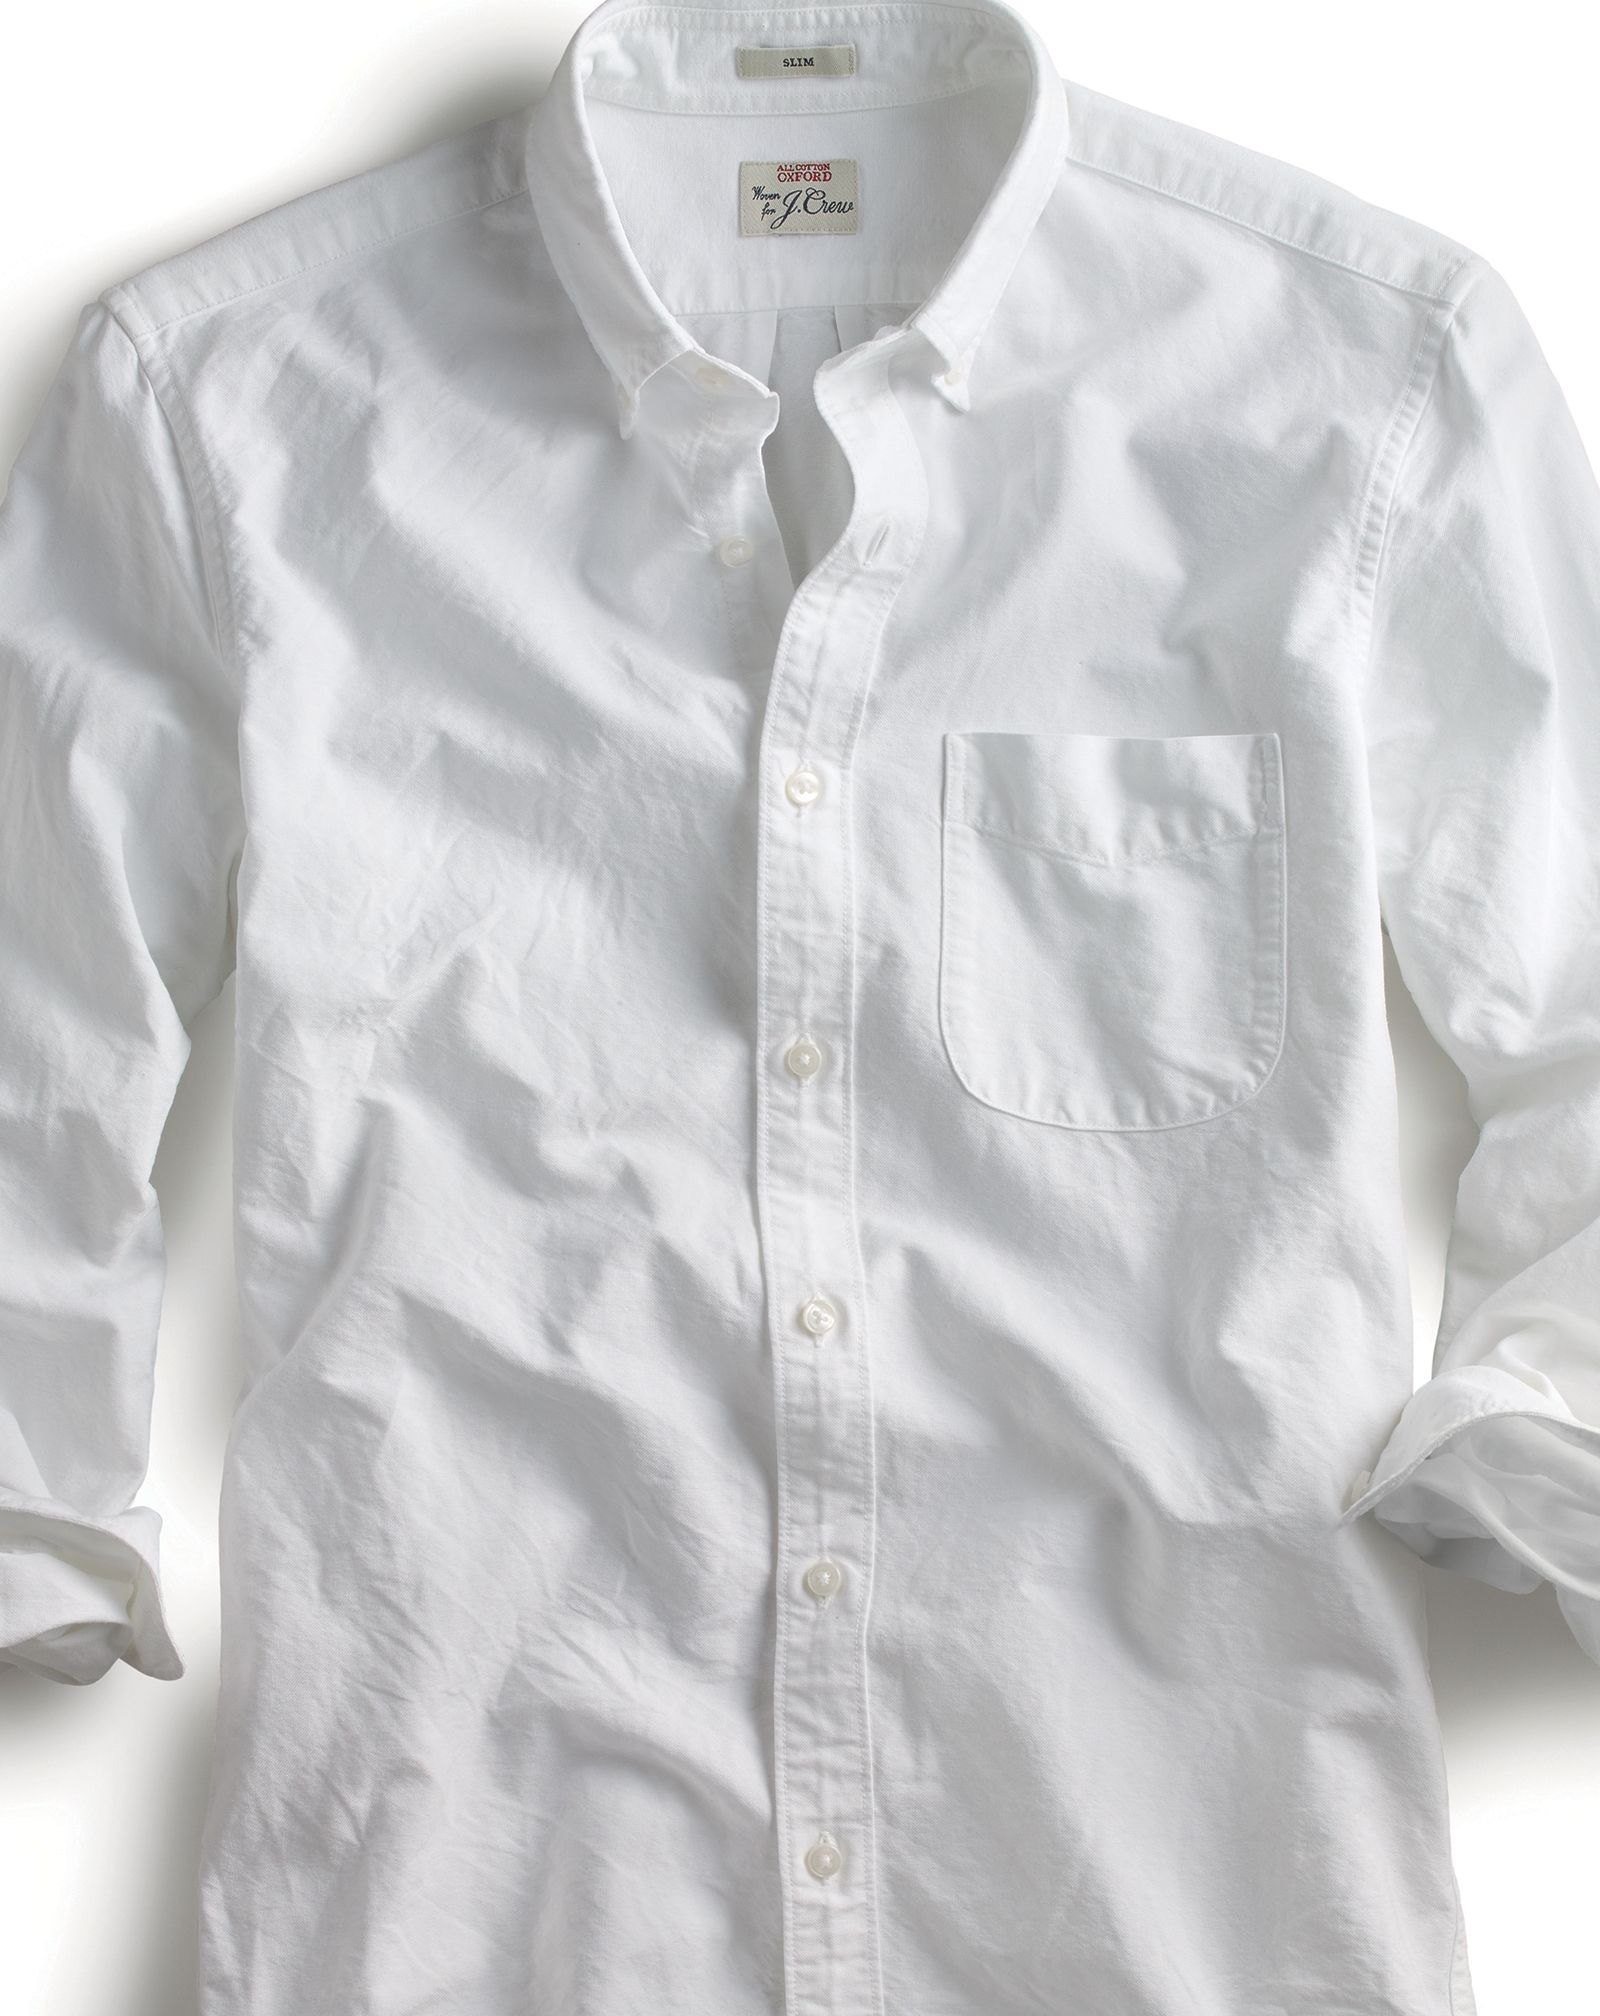 Men's Slim American Pima Cotton Oxford Shirt - Men's Shirts